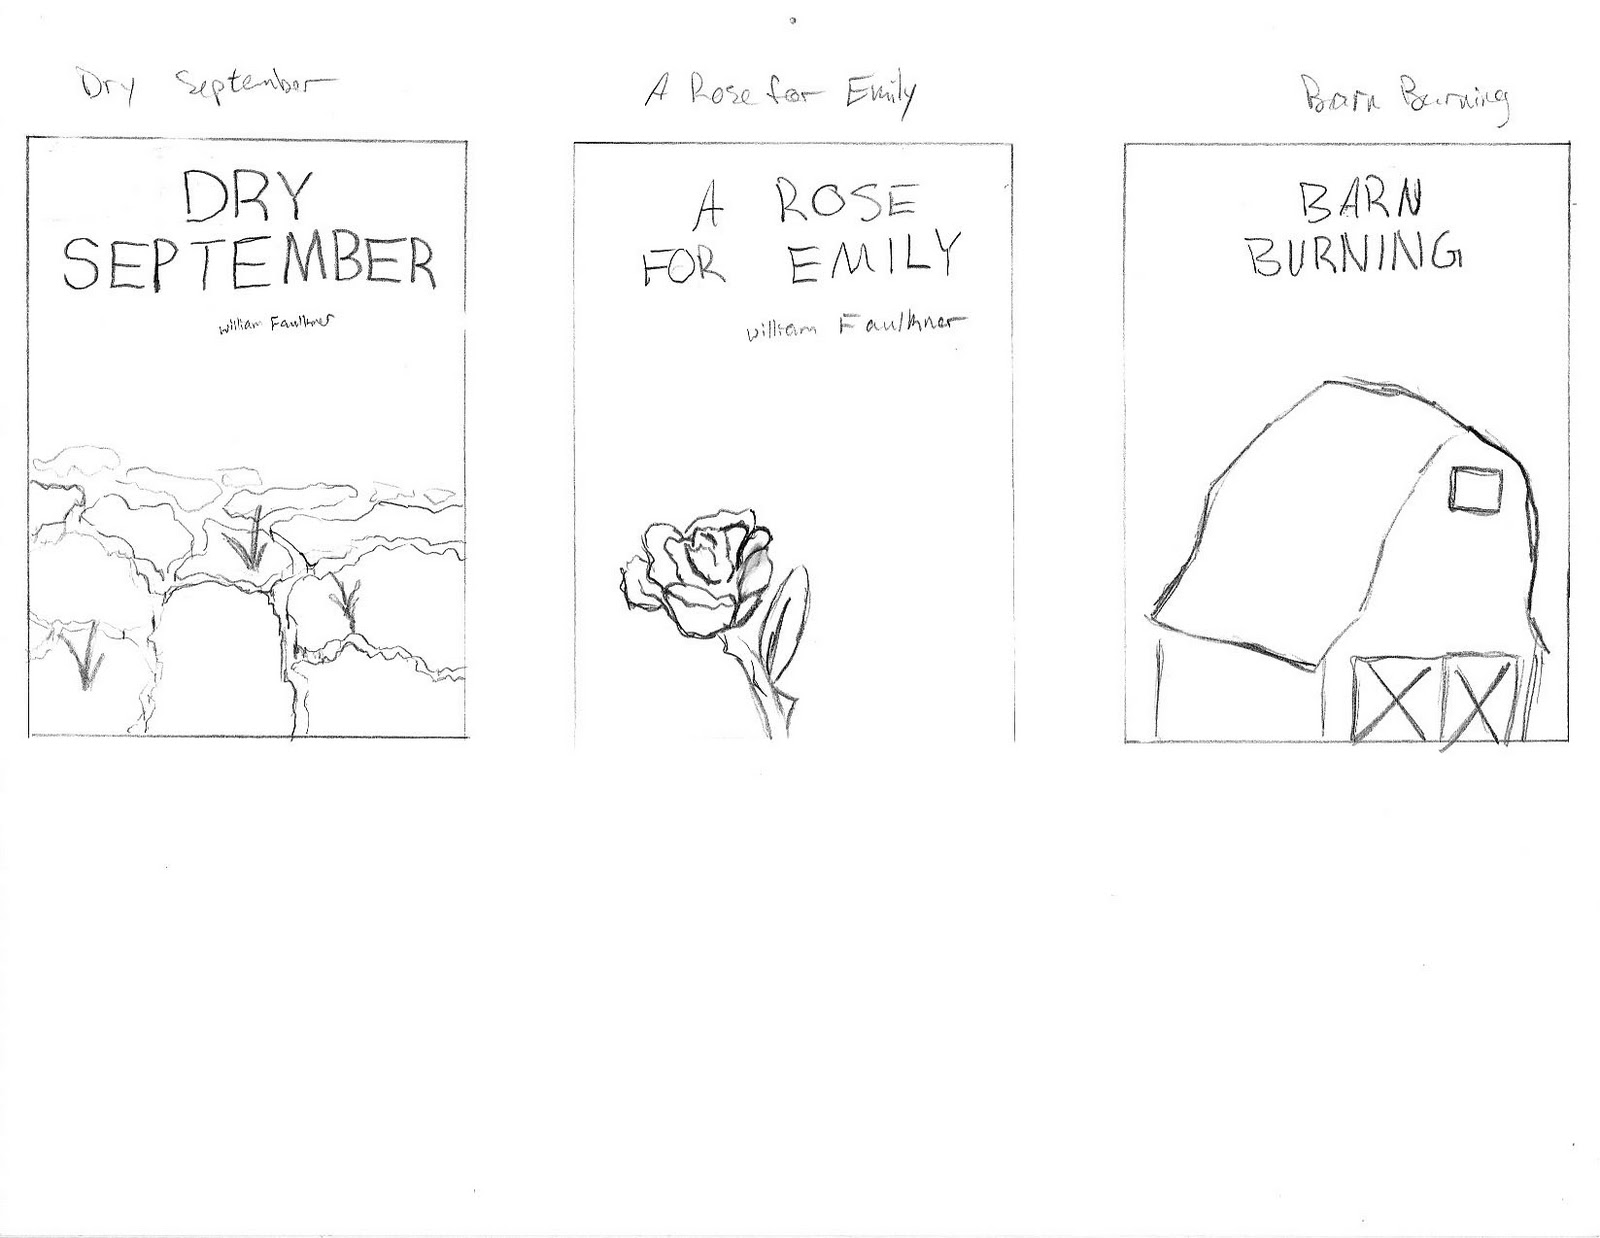 """themes in barn burning and a rose for emily Hunter taylor dr william bedford english 1102-011 10 september 2013 comparing and contrasting """"a rose for emily"""" and """"barn burning"""" in william faulkner's short stories """"a rose for emily"""" and """"barn burning"""" the characters are both guilty of."""